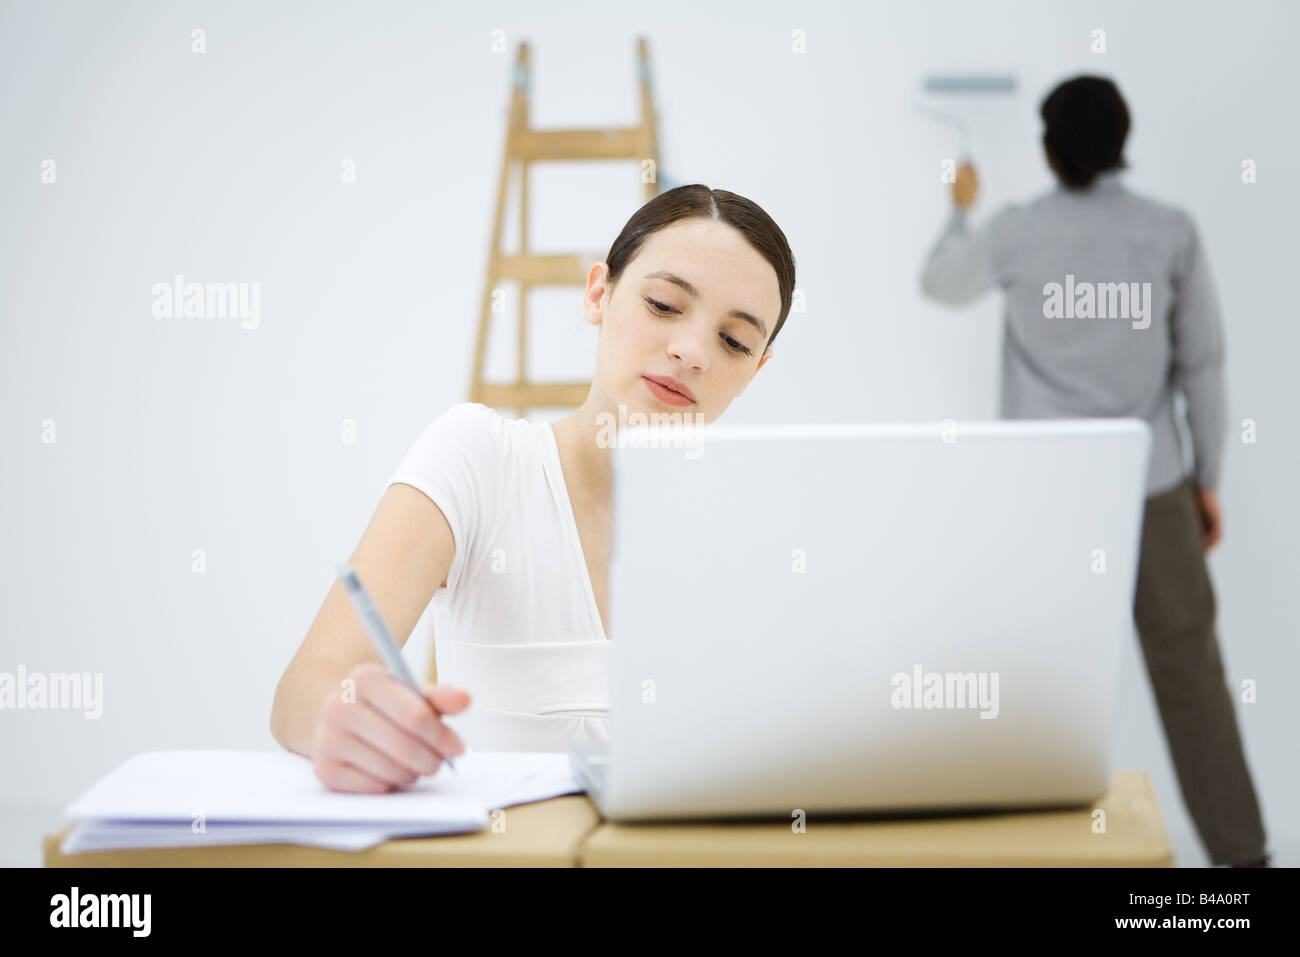 Young woman using laptop computer, man in background painting wall - Stock Image